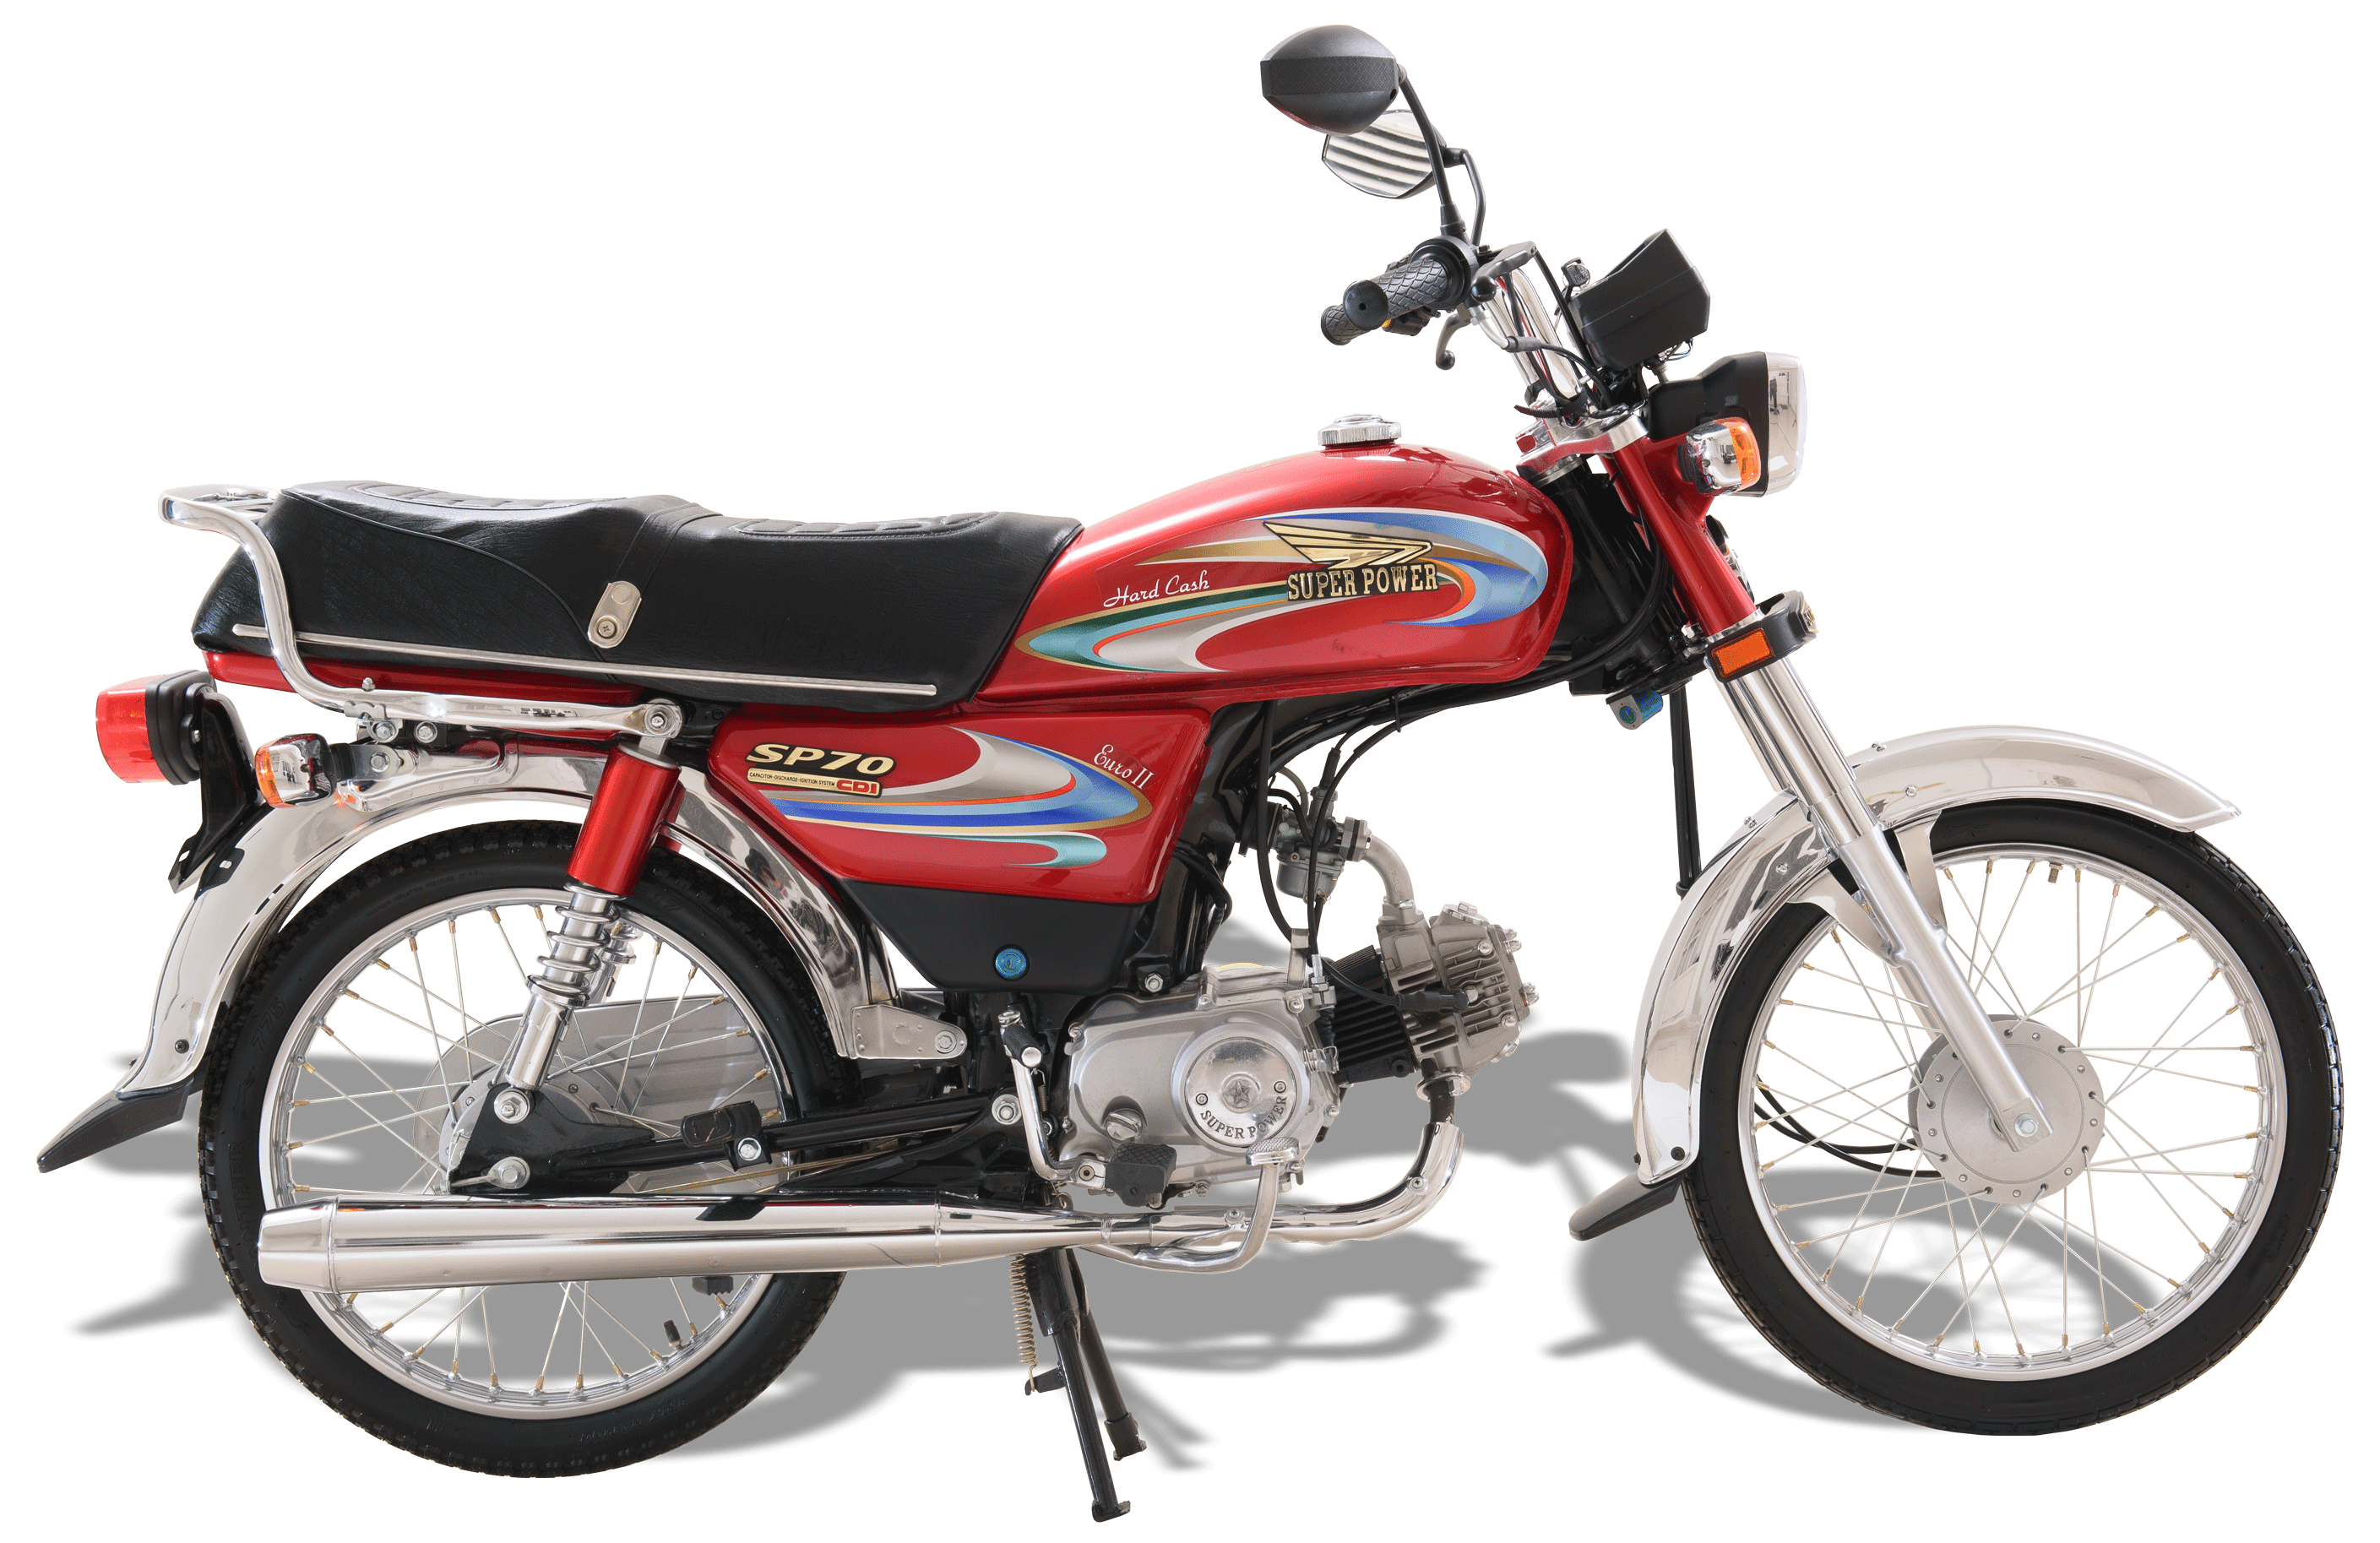 SP 70cc Super Power Motorbike 2021 Model Price In India Pakistan